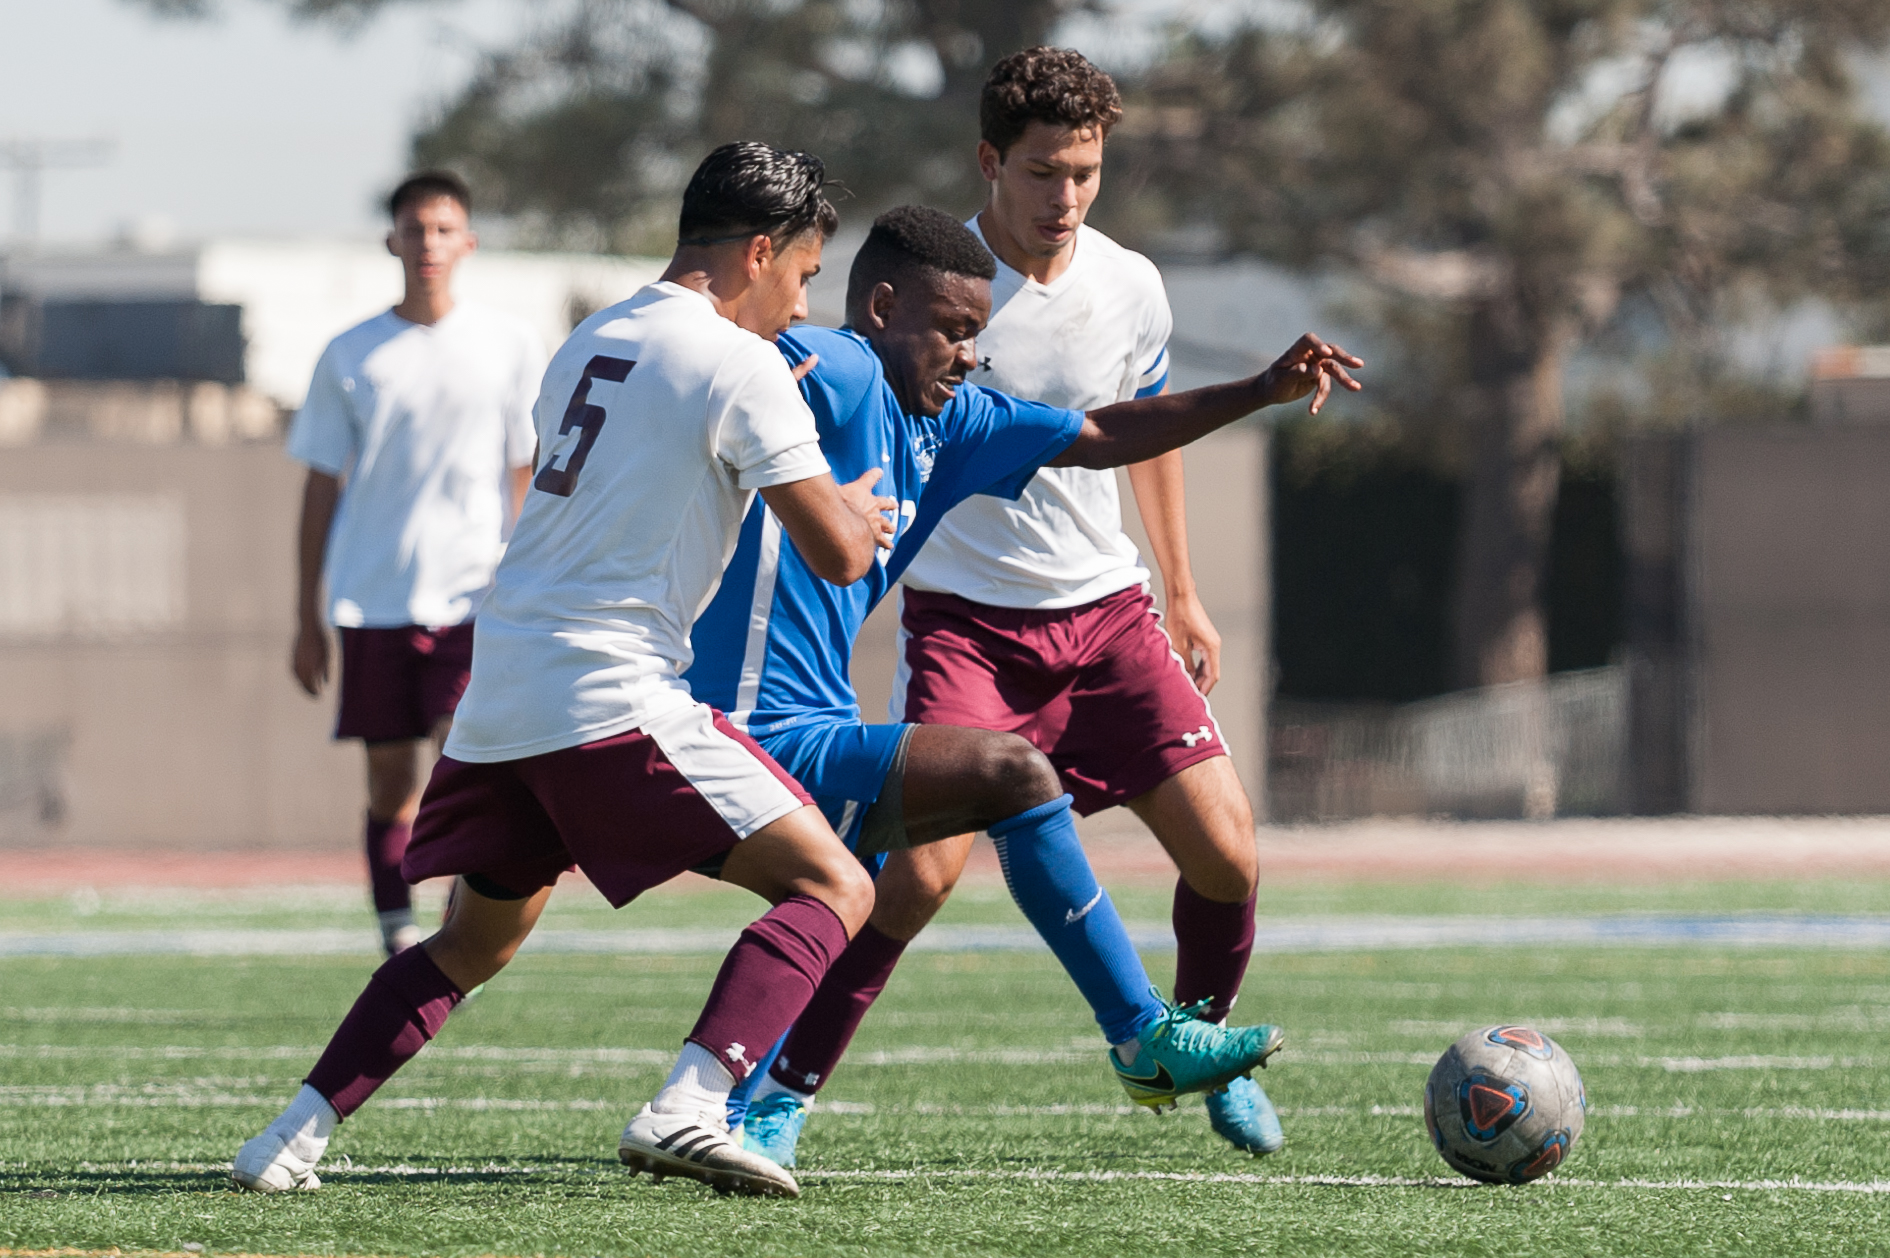 Midfielder Divine Simbu (23,right) of Santa Monica College competes with Angel Barajas (5,left) of Victor Valley College for possession of the ball. The Santa Monica College Corsairs won the game 2-0 against the Victor Valley Rams. The match was held at the Corsair Stadium at Santa Monica College in Santa Monica, Calif. on October 6, 2017. (Photo by: Justin Han/Corsair Staff)